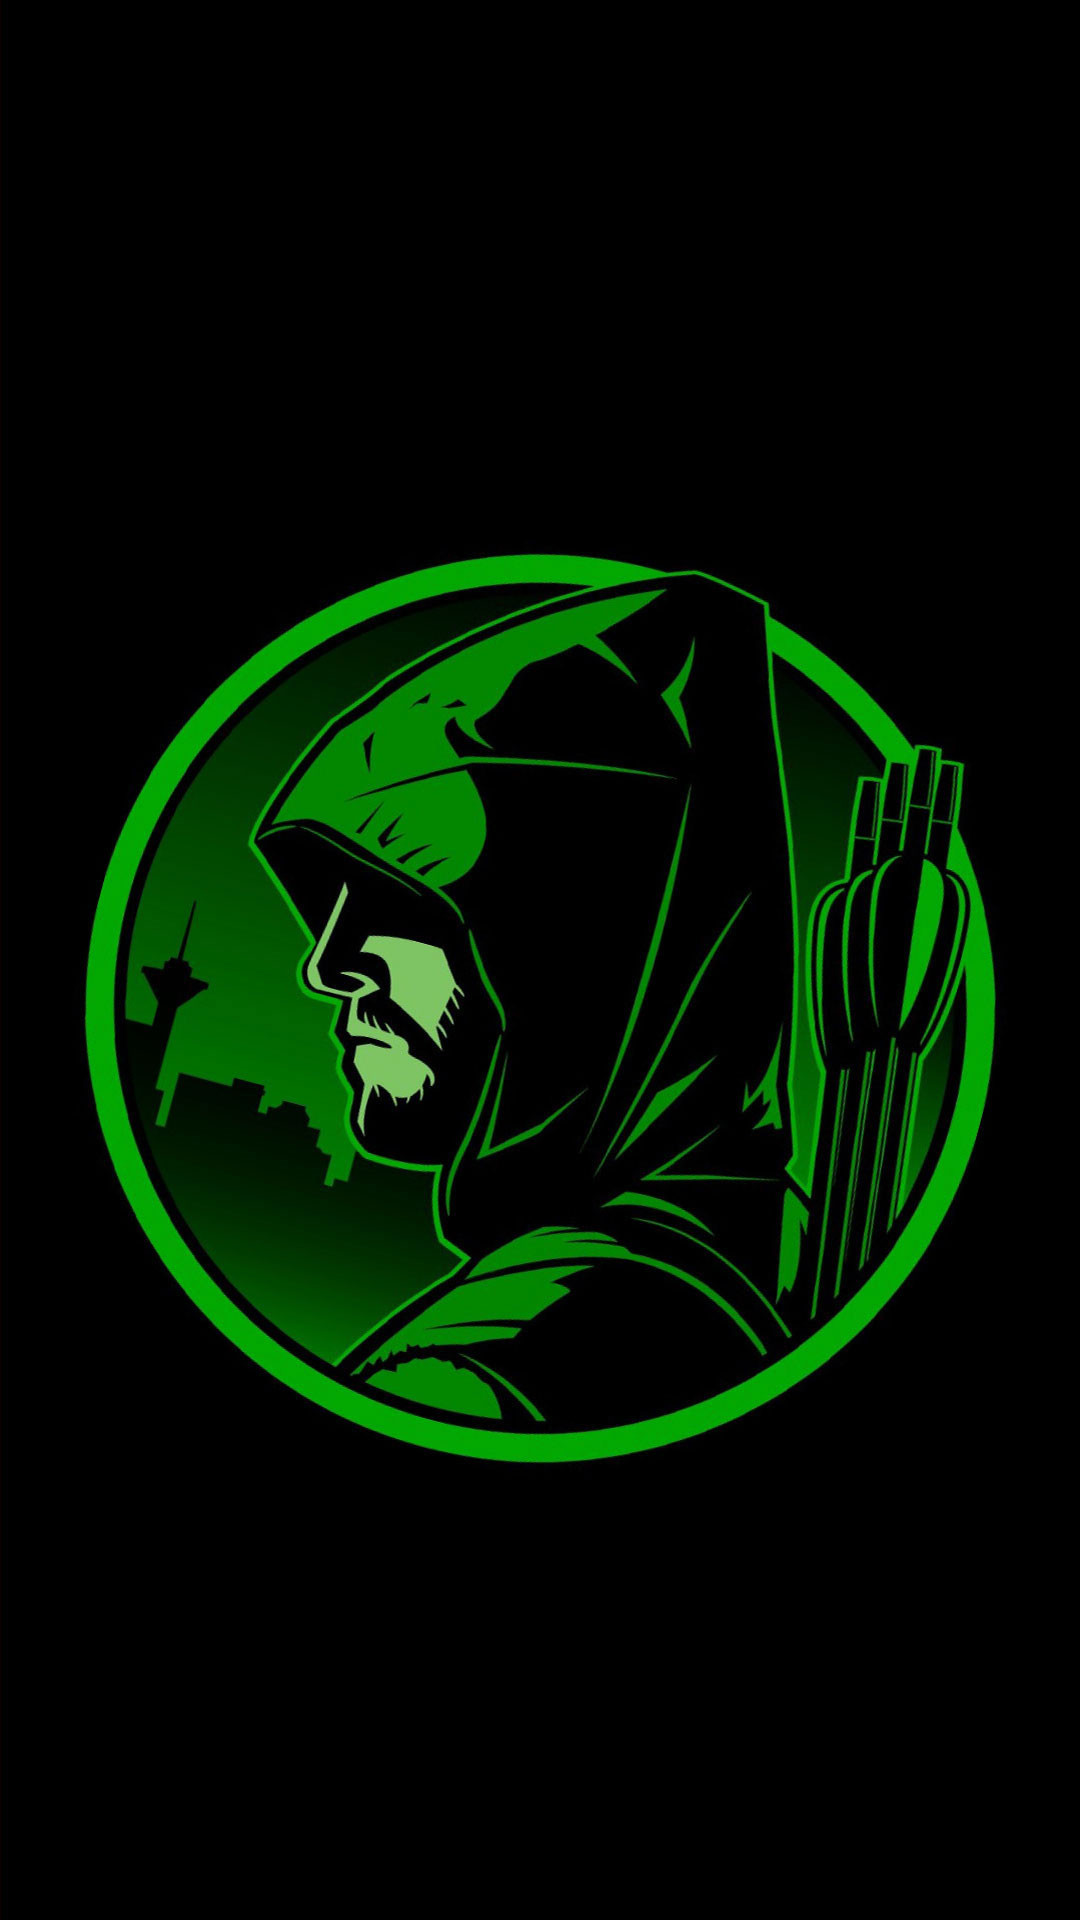 Arrow HD Wallpaper For Android 1080×1920.